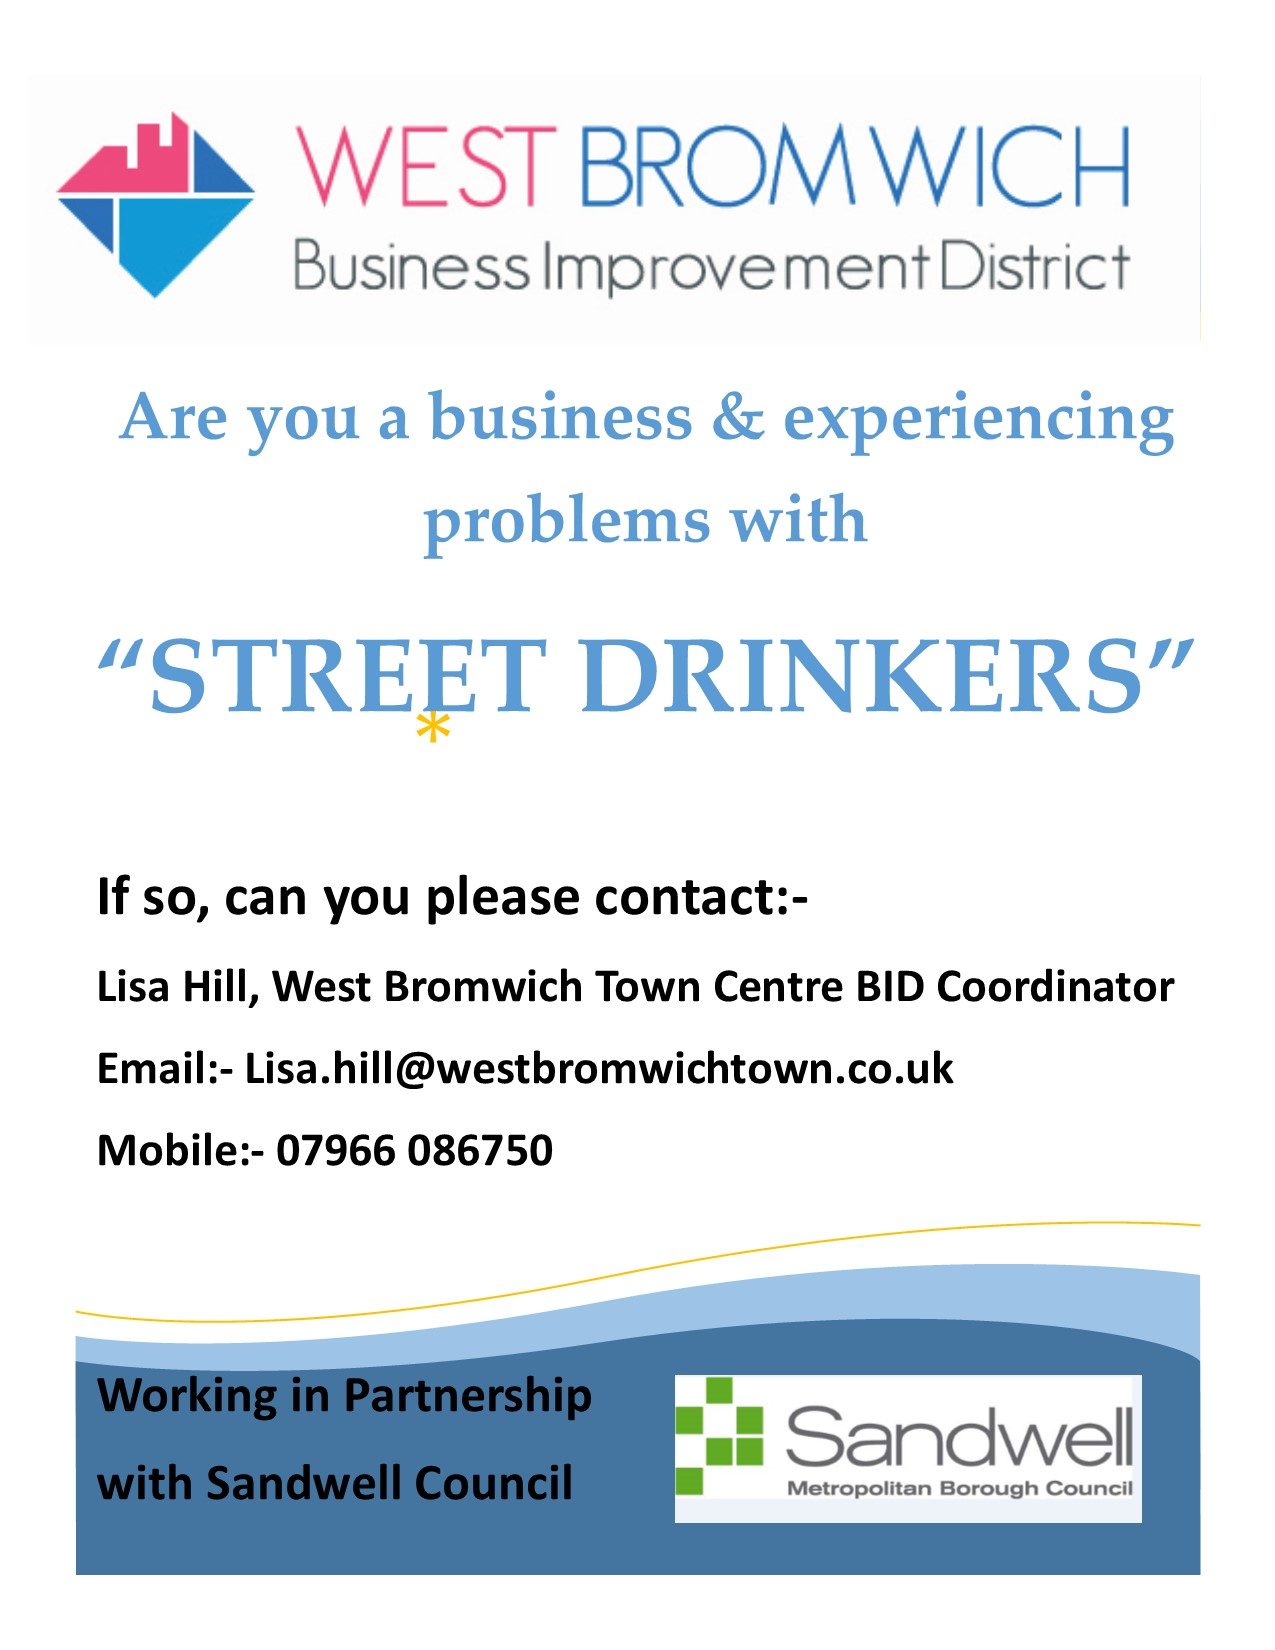 Are you a business & experiencing problems with Street Drinkers ??